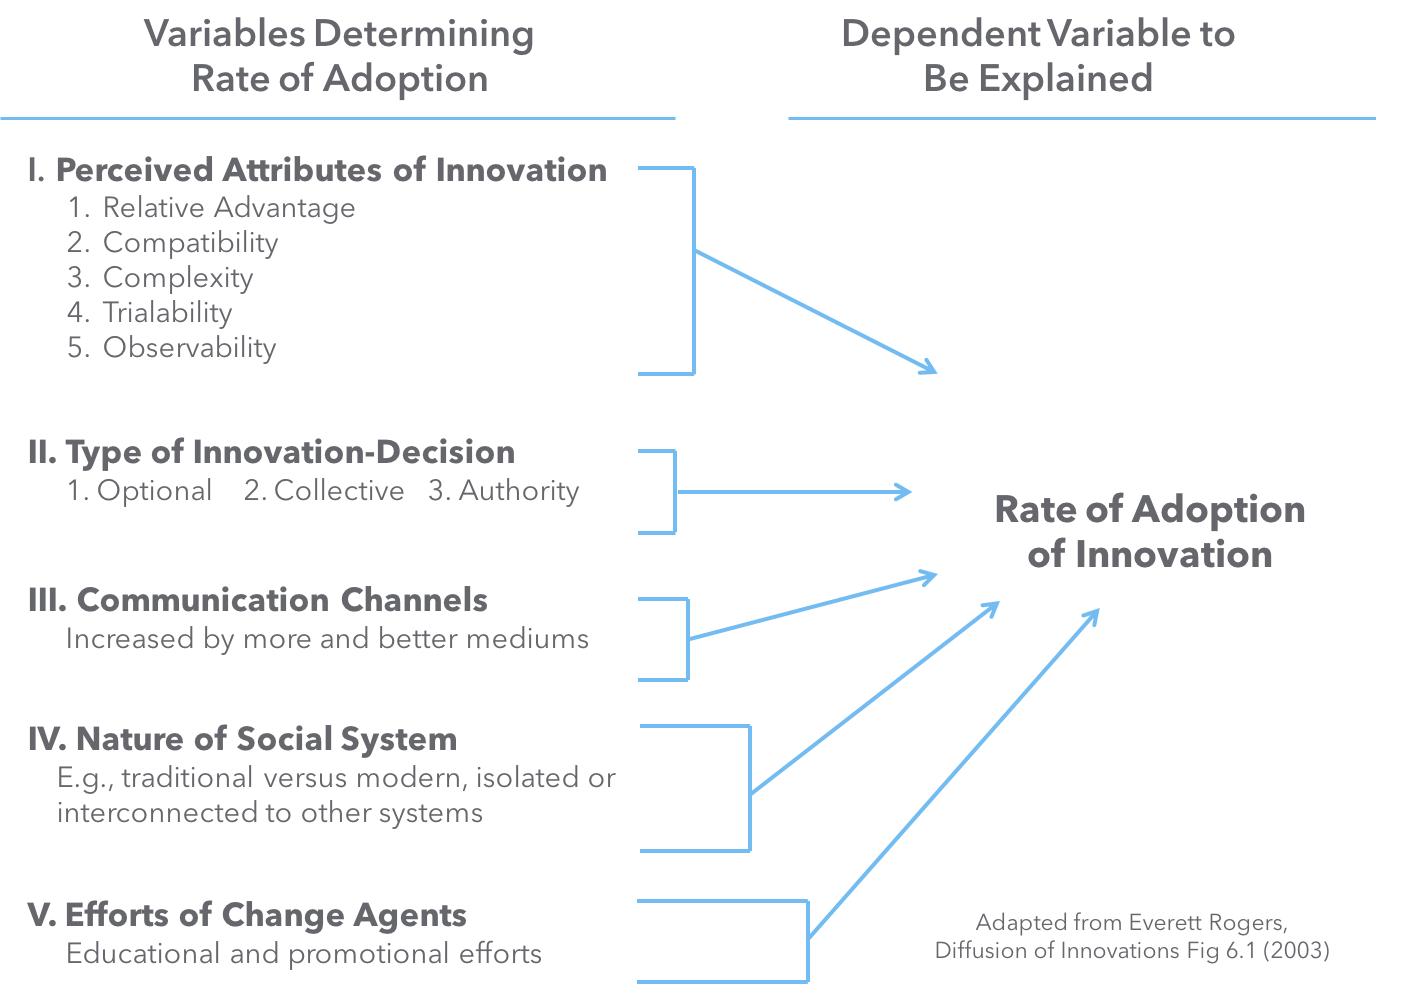 Variables Determining The Rate Of Adoption Of Innovations